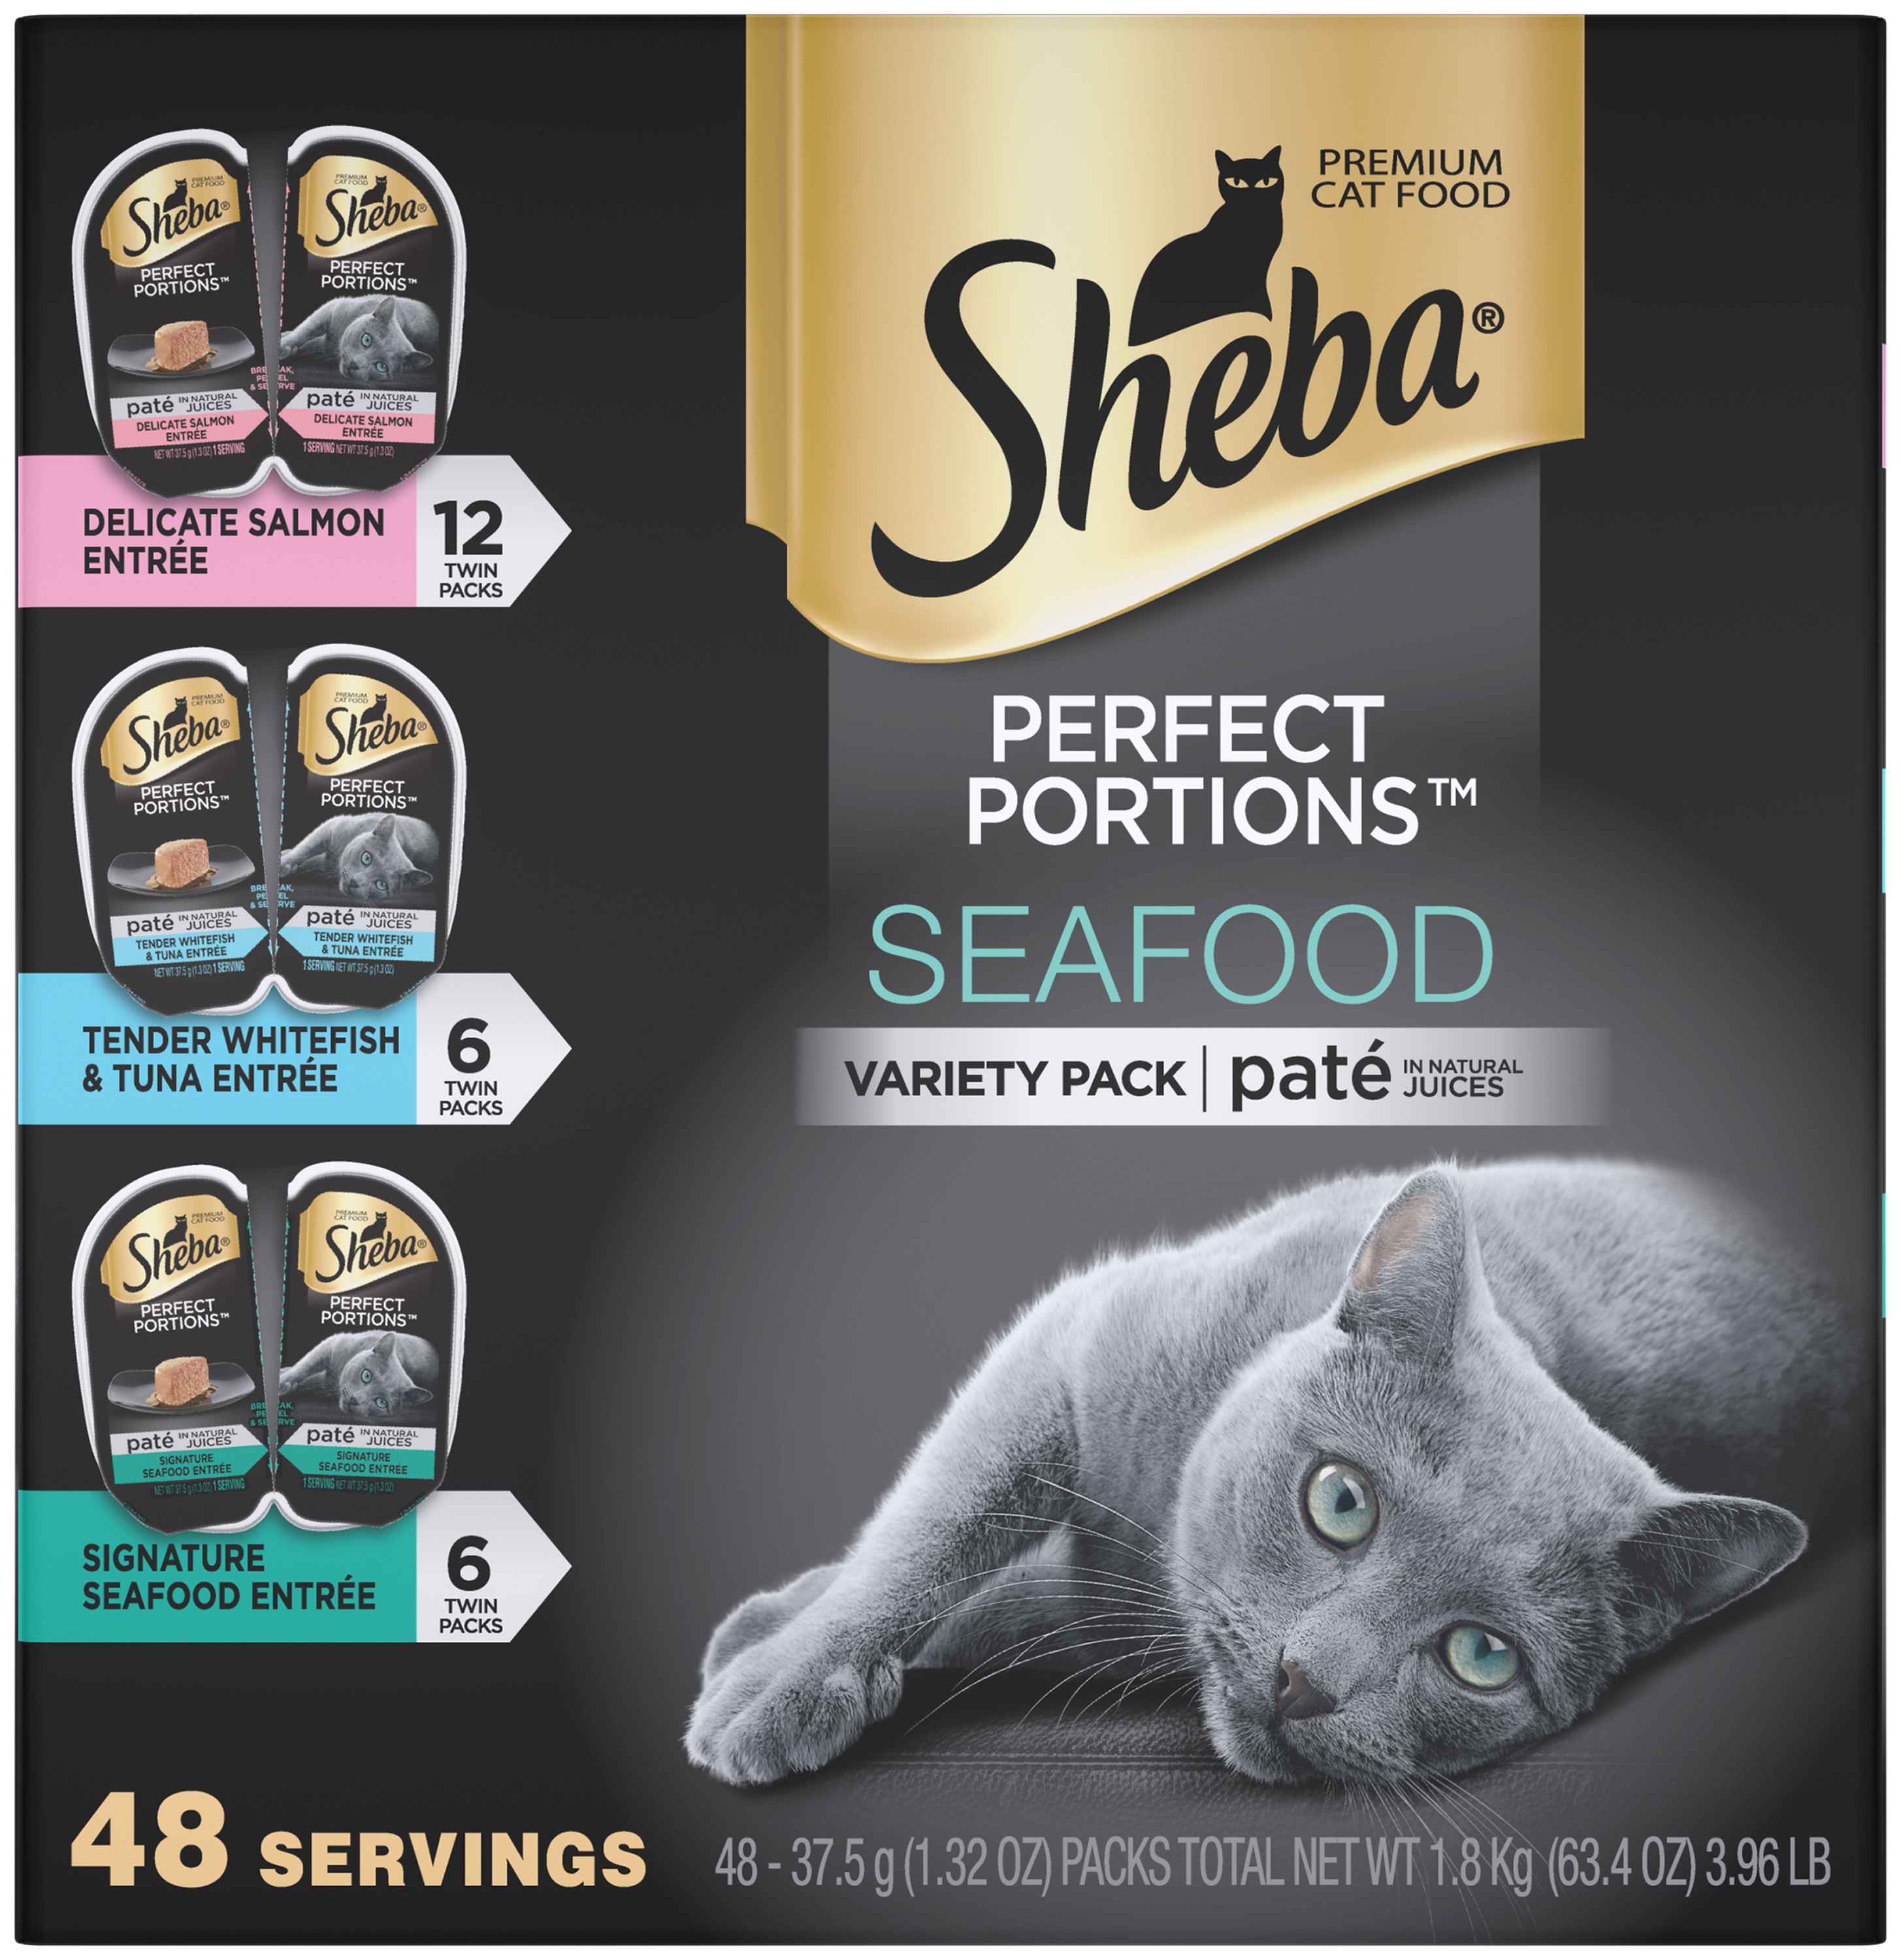 Sheba Perfect Portions Seafood Pate Multipack Signature Seafood Entree, Delicate Salmon Entree, And Tender Whitefish & Tuna Entree Wet Cat Food 2.6 Oz. (24 Twin Packs = 48 Servings)